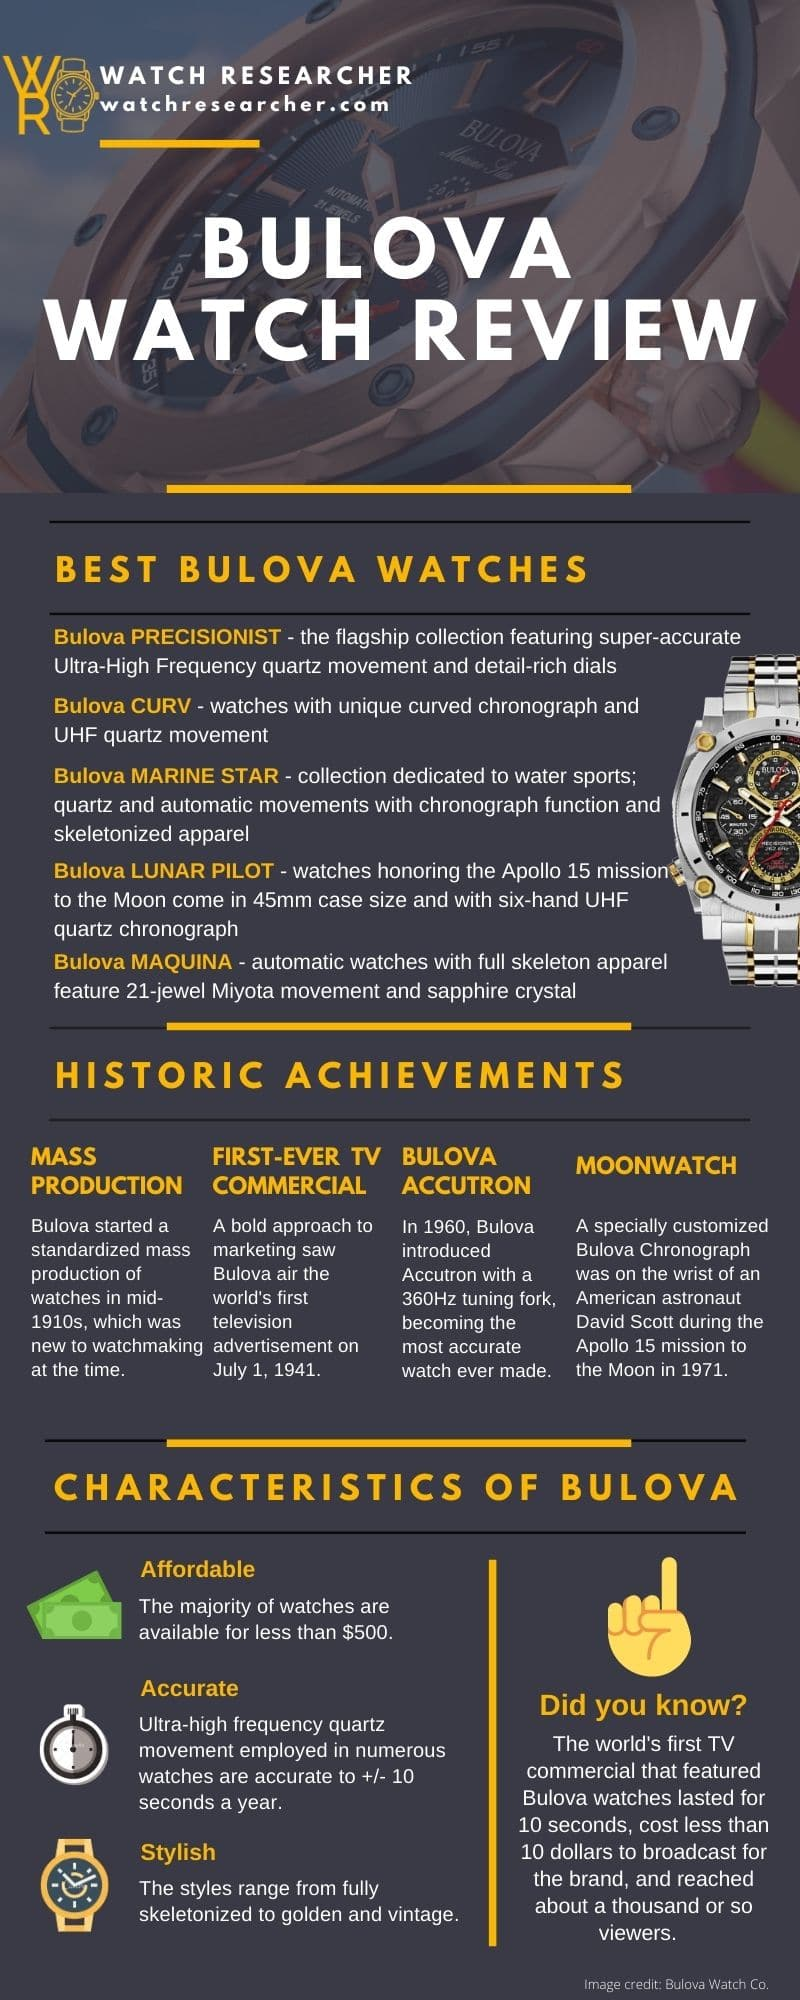 thorough infographic on the Bulova watch brand